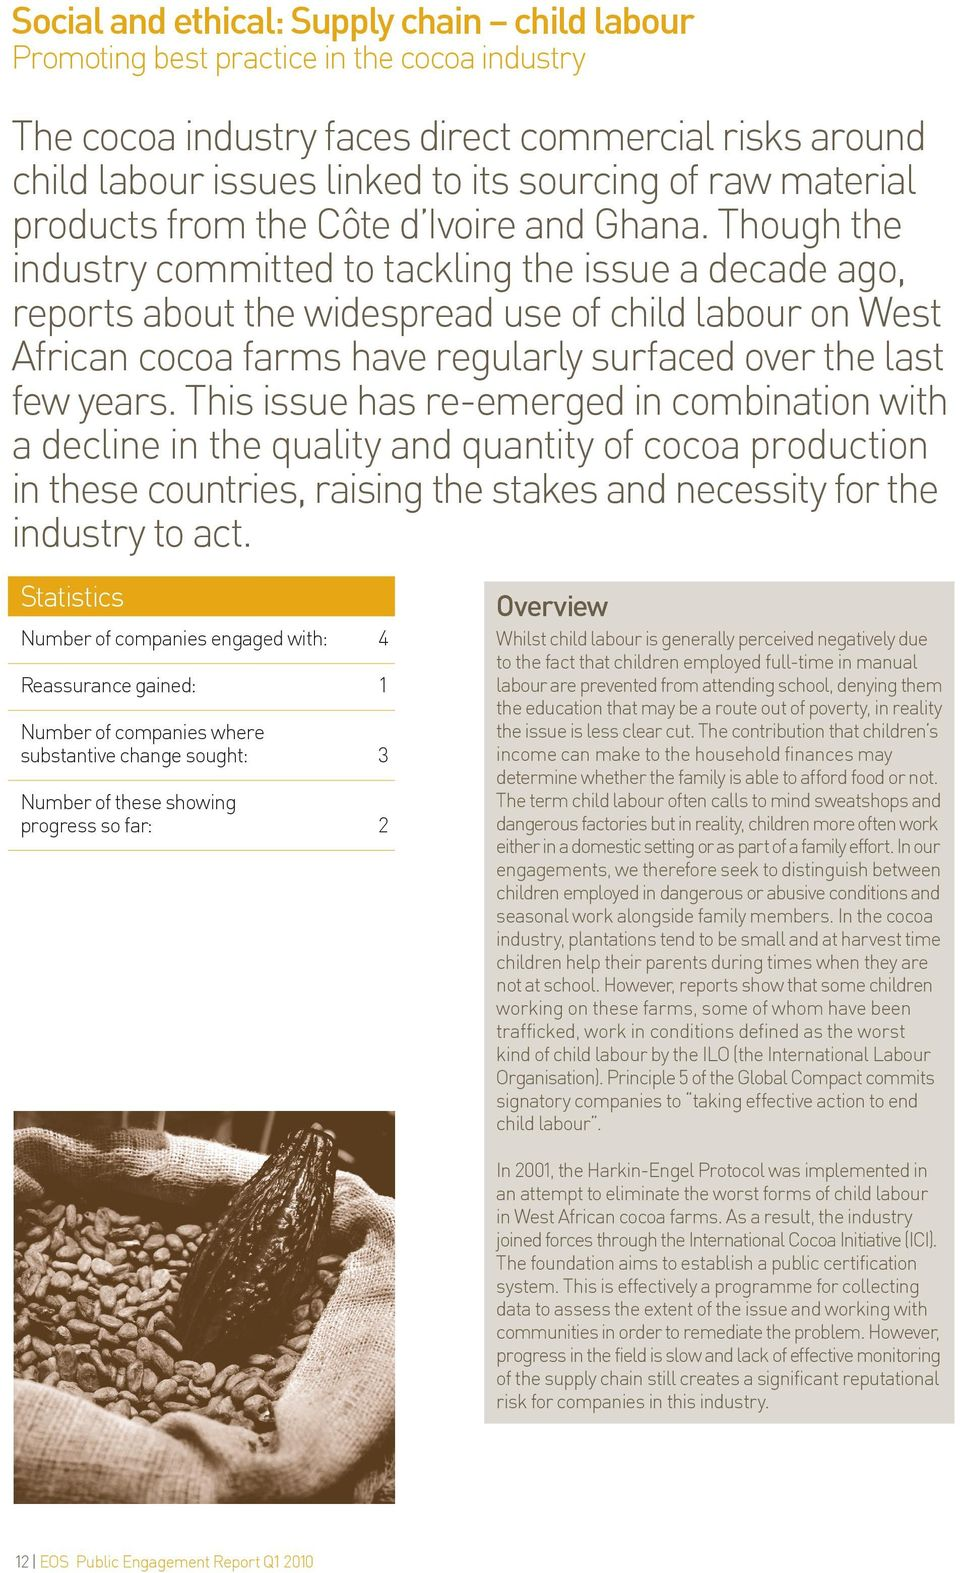 Though the industry committed to tackling the issue a decade ago, reports about the widespread use of child labour on West African cocoa farms have regularly surfaced over the last few years.